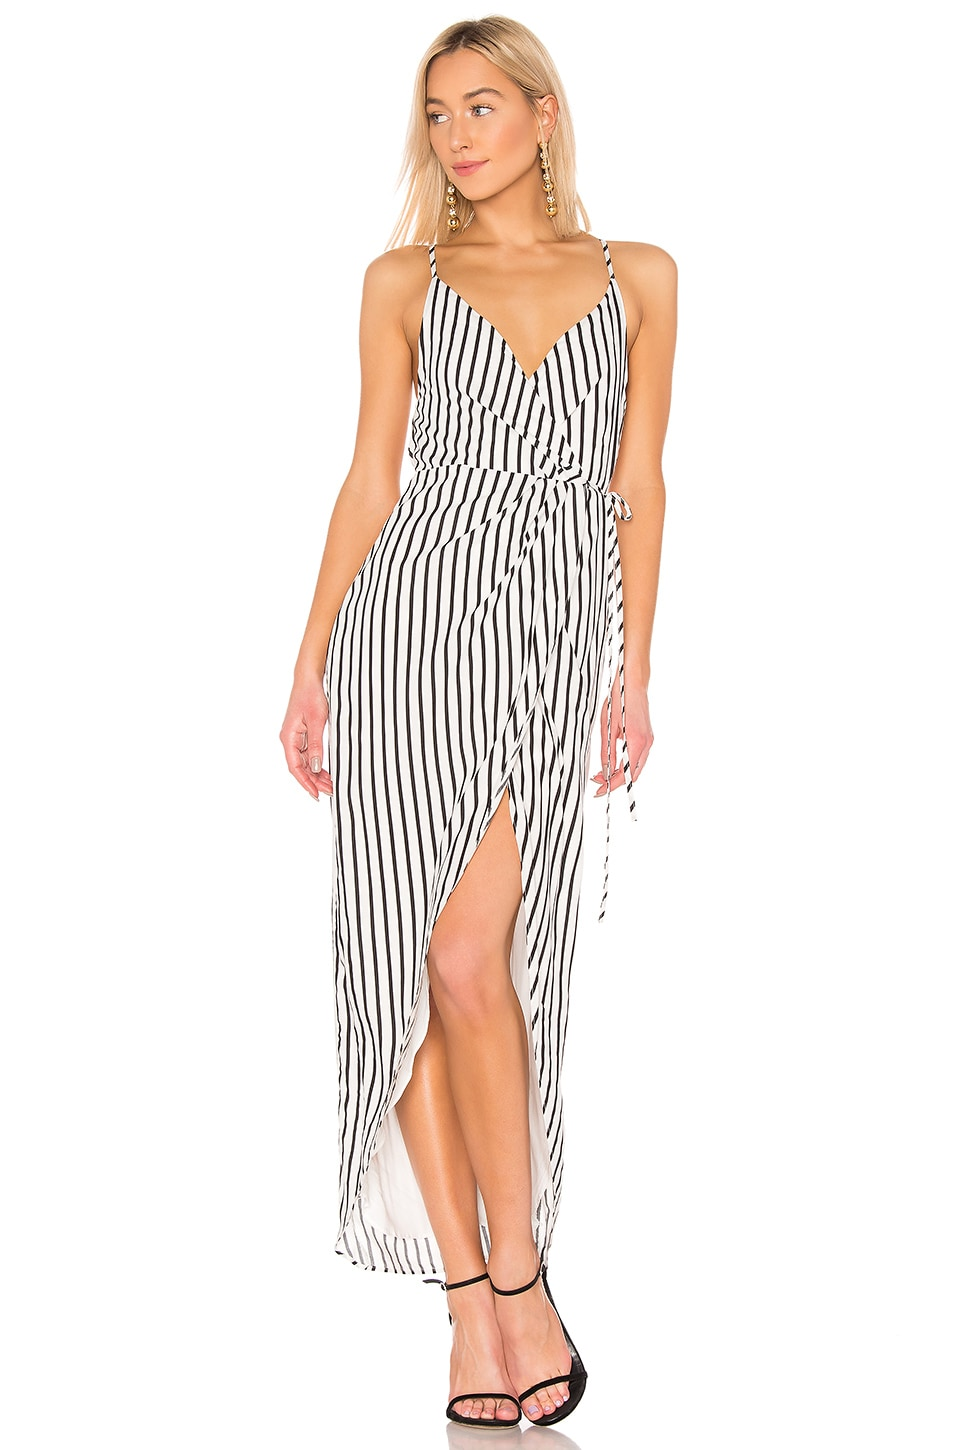 NBD x Naven Claudia Dress in Black White Stripe